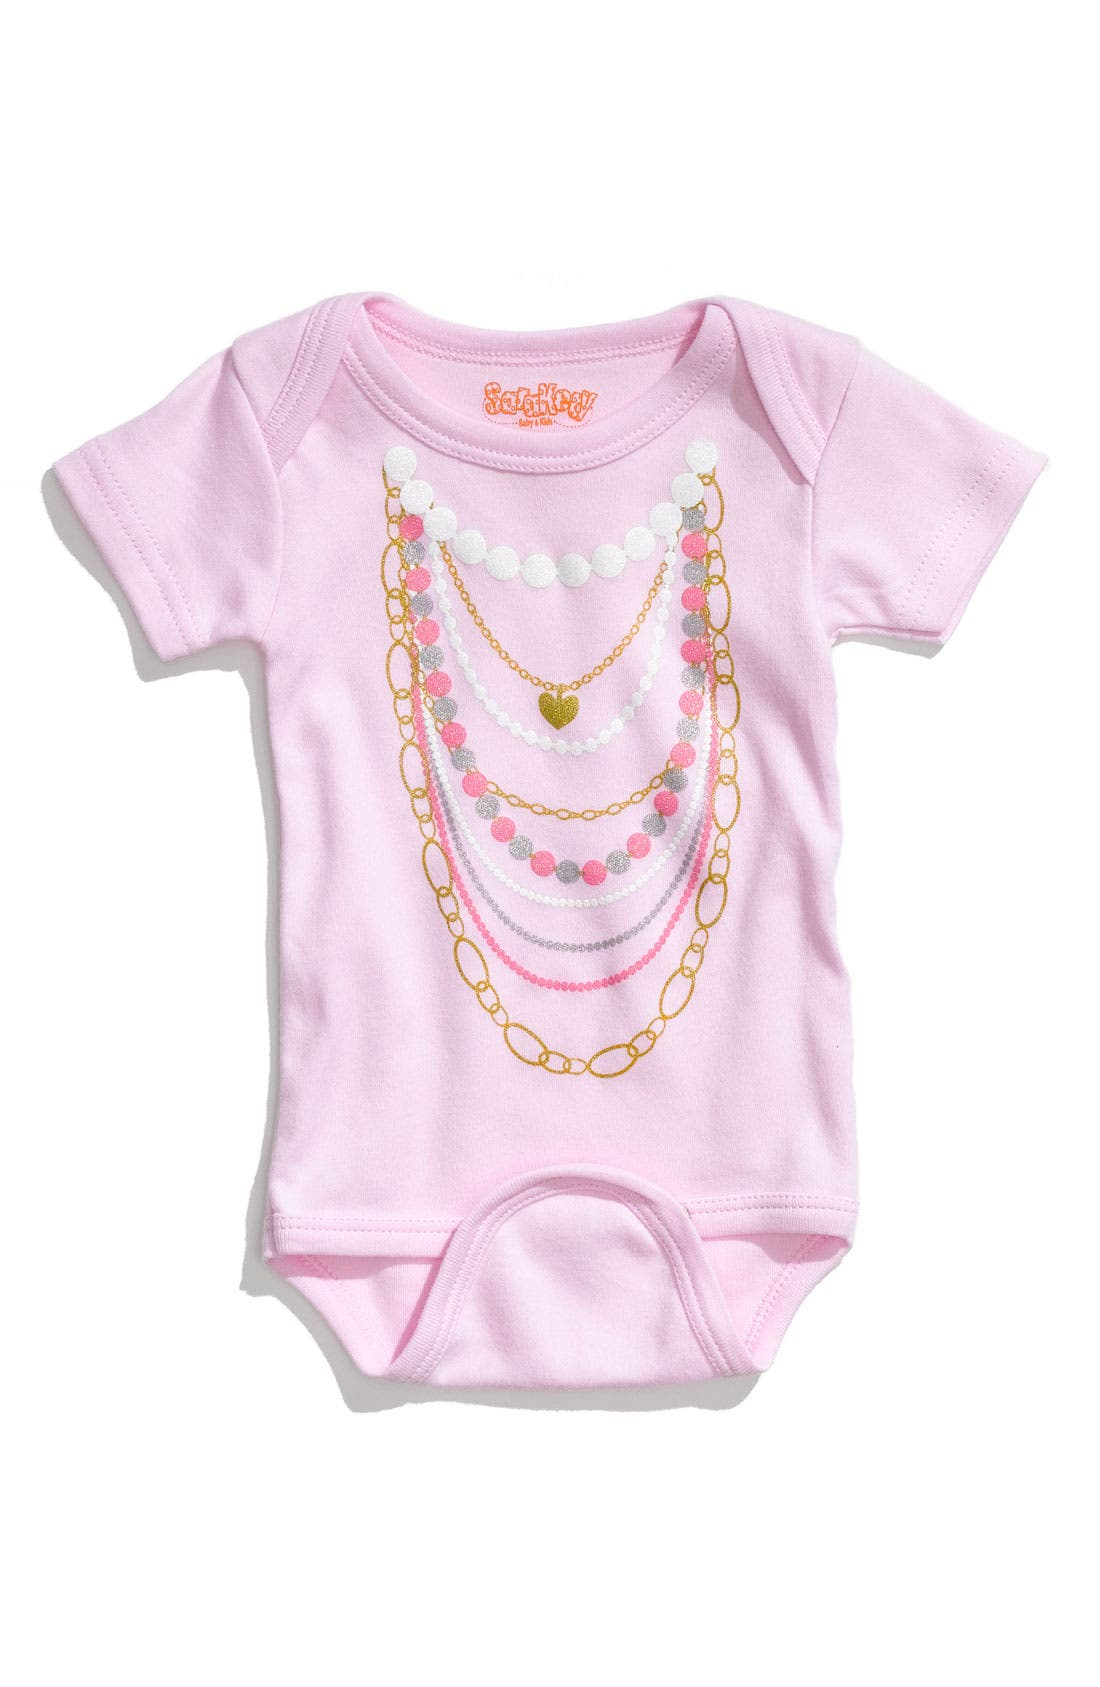 Main Image - Sara Kety Baby & Kids 'Necklaces' Bodysuit (Infant)